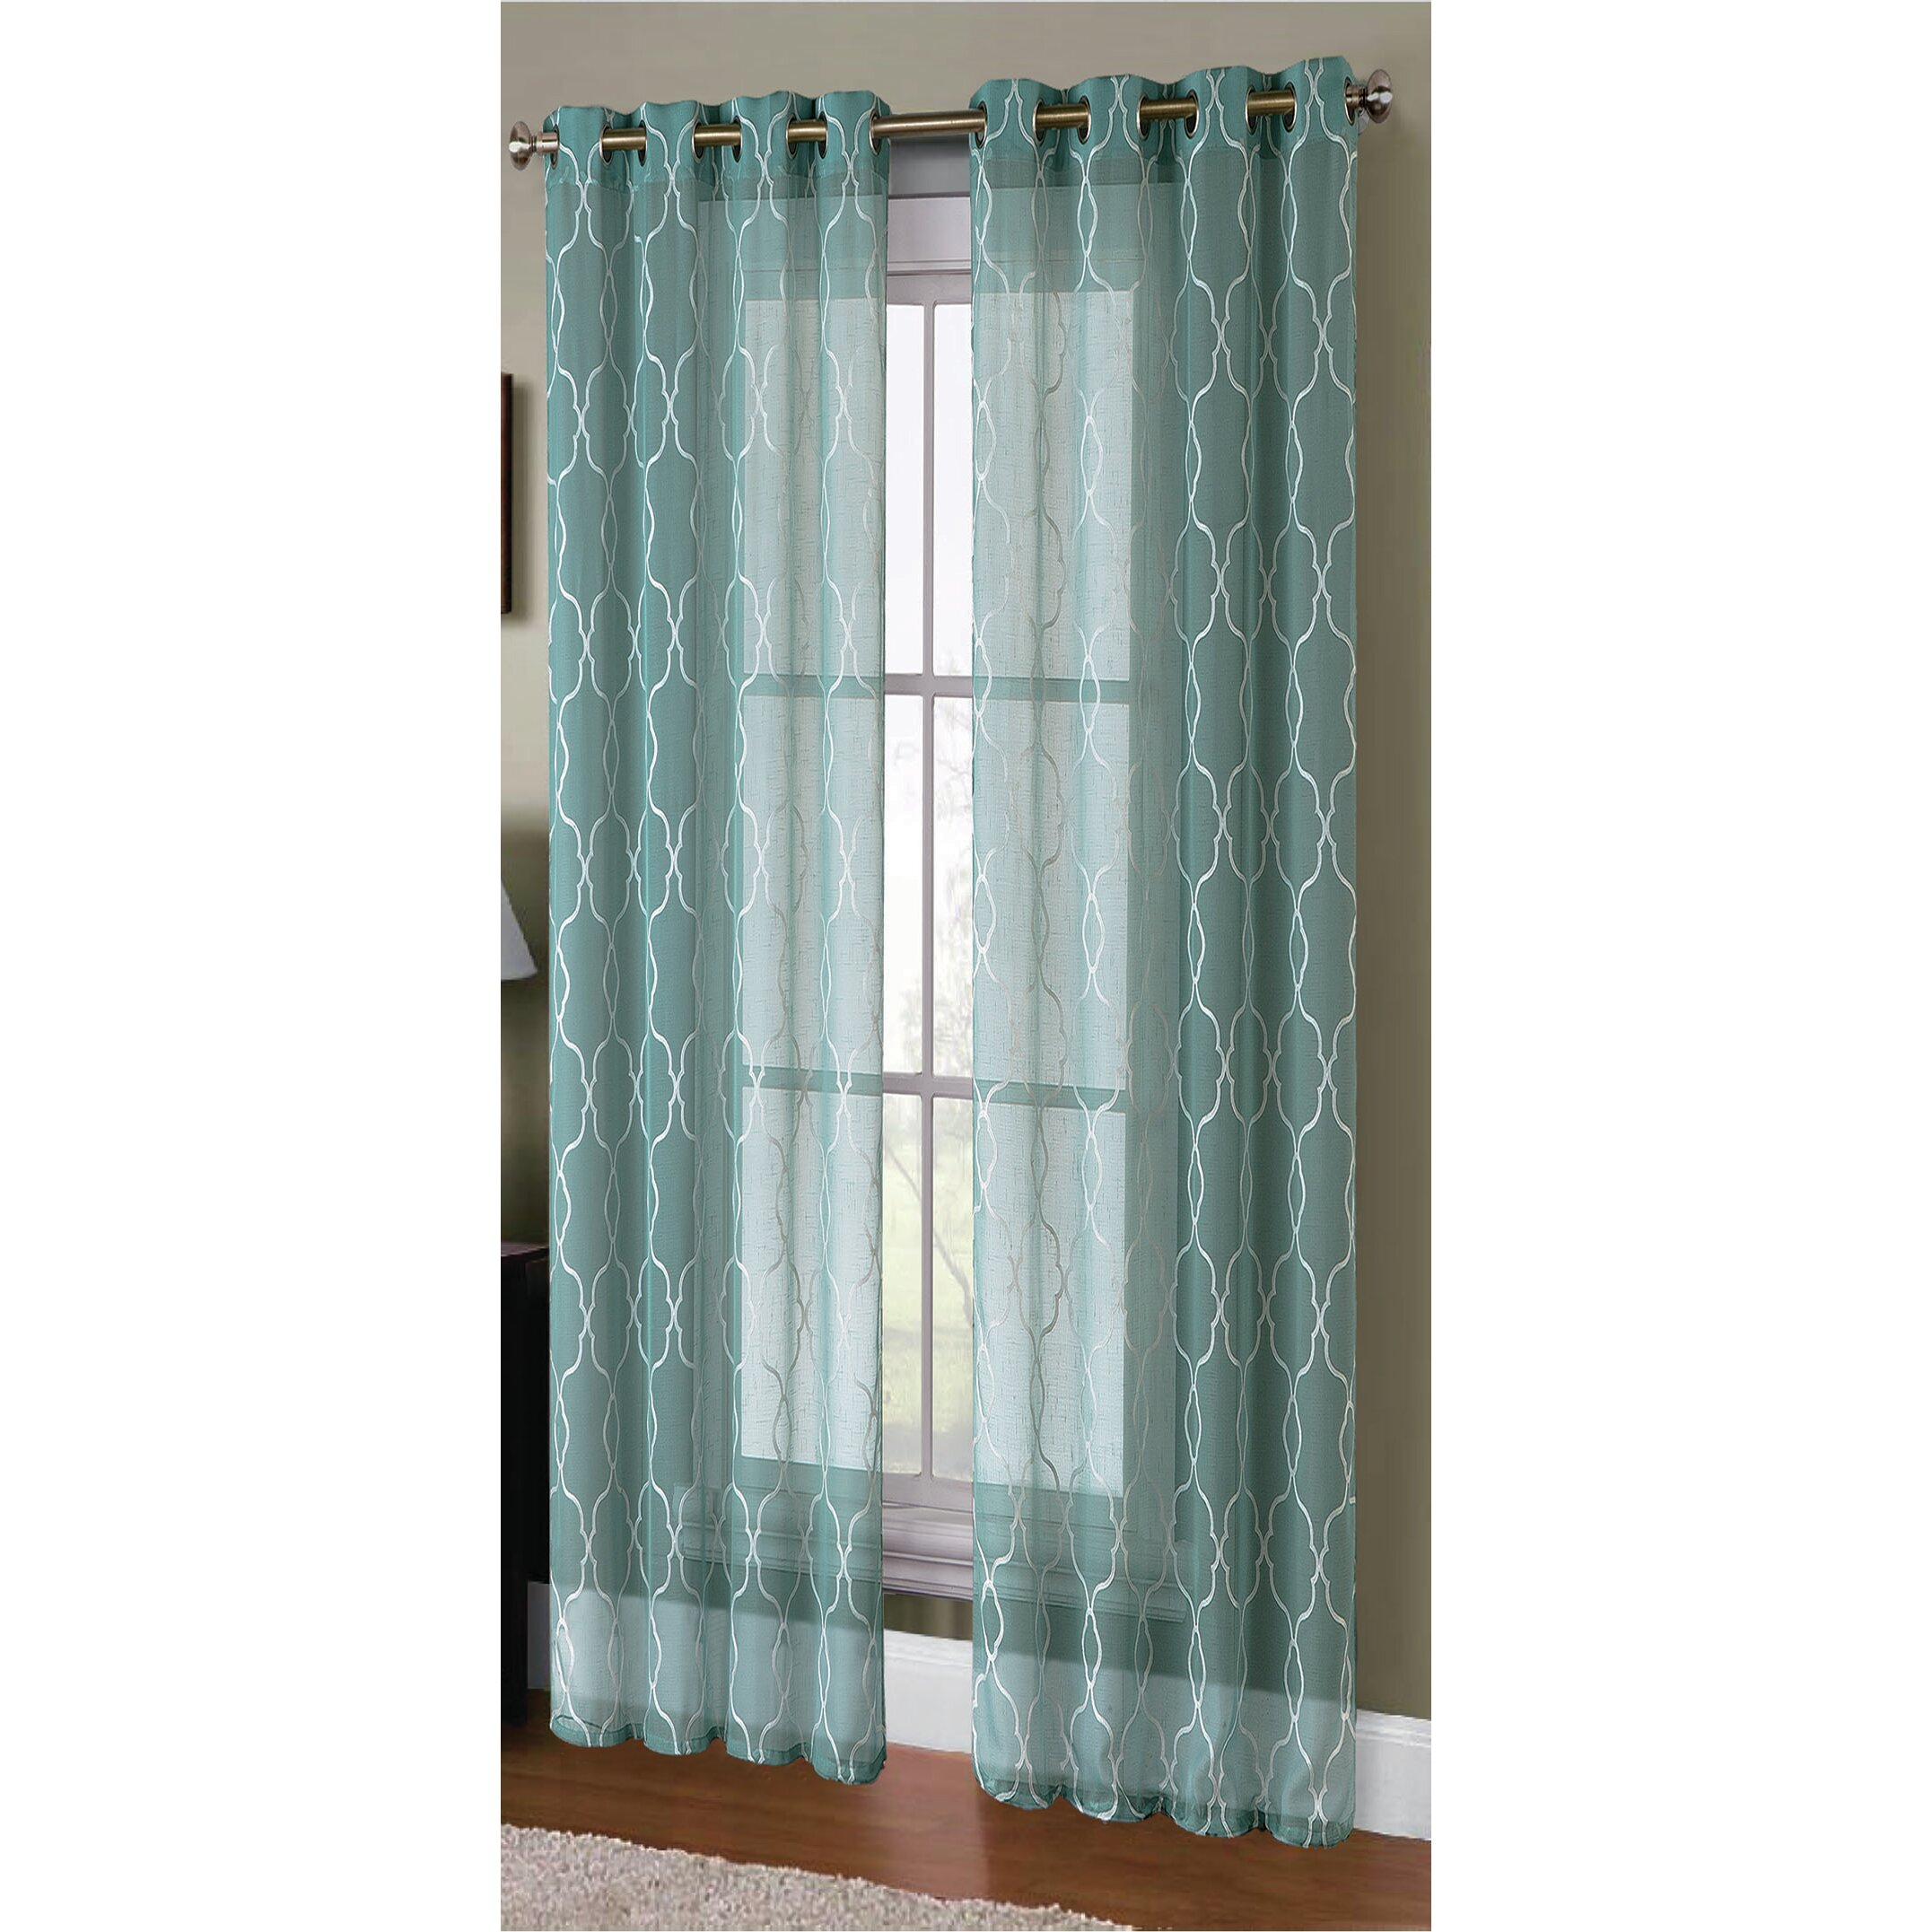 Wonderful image of  Hill Knollwood Boho Embroided Sheer Curtain Panels & Reviews Wayfair with #644127 color and 2153x2153 pixels